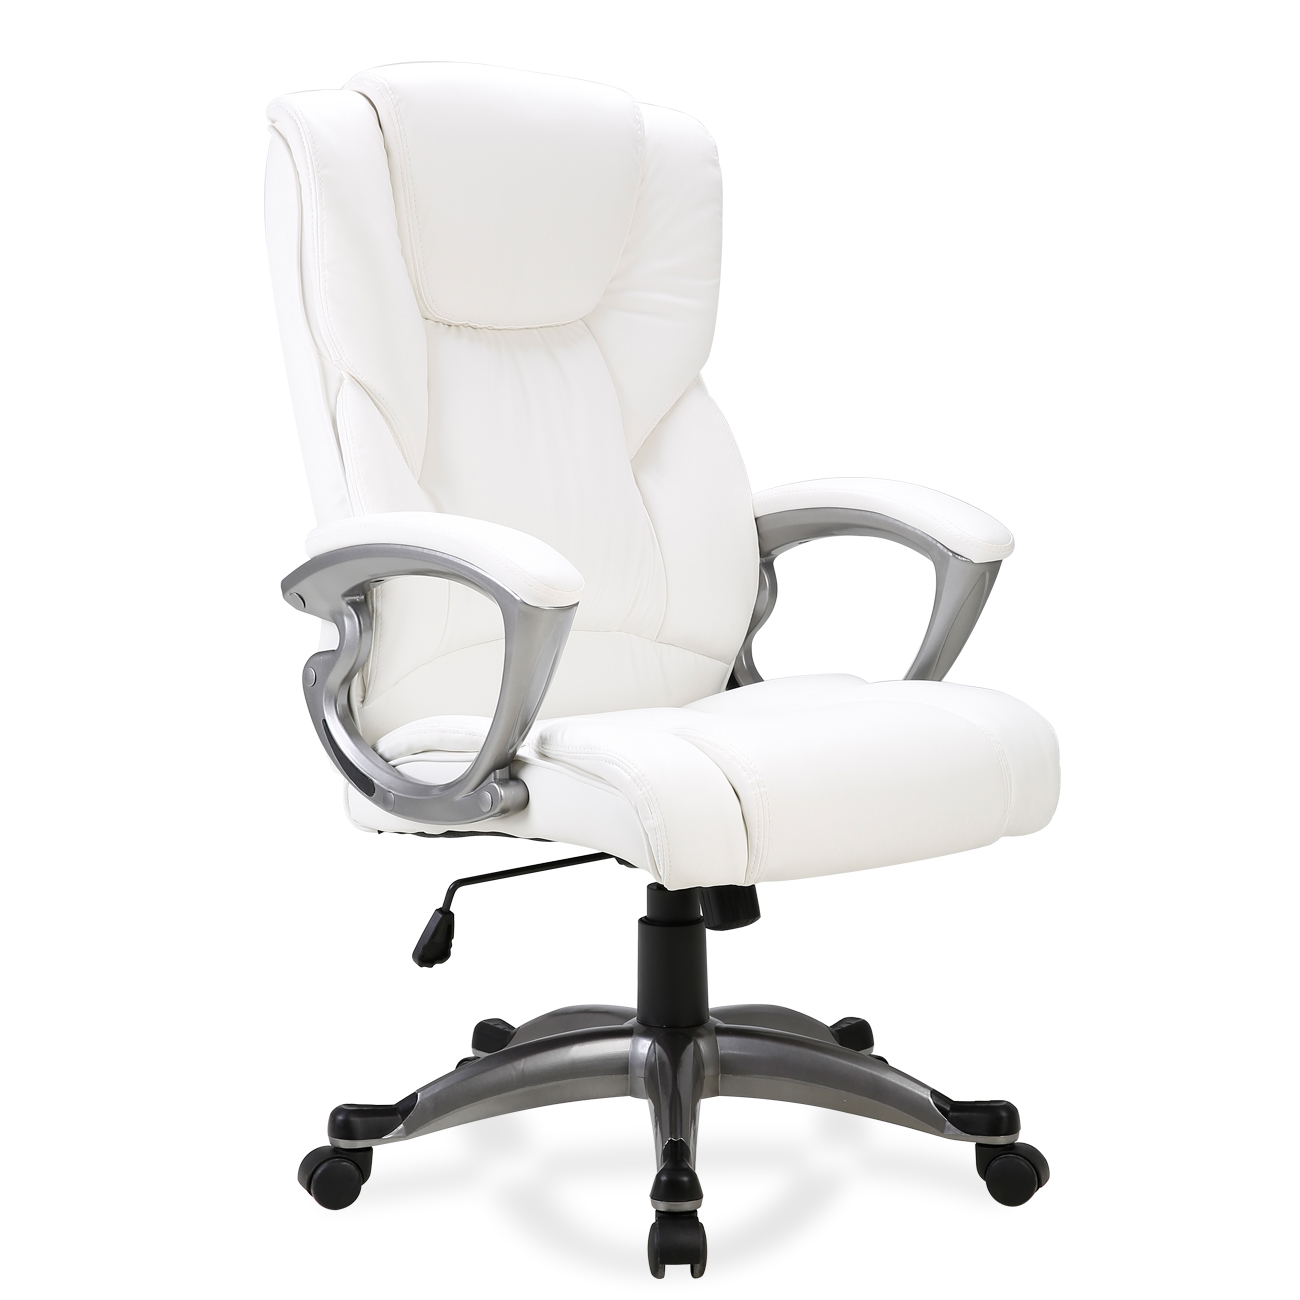 positiv plus high back ergonomic office chair instructions